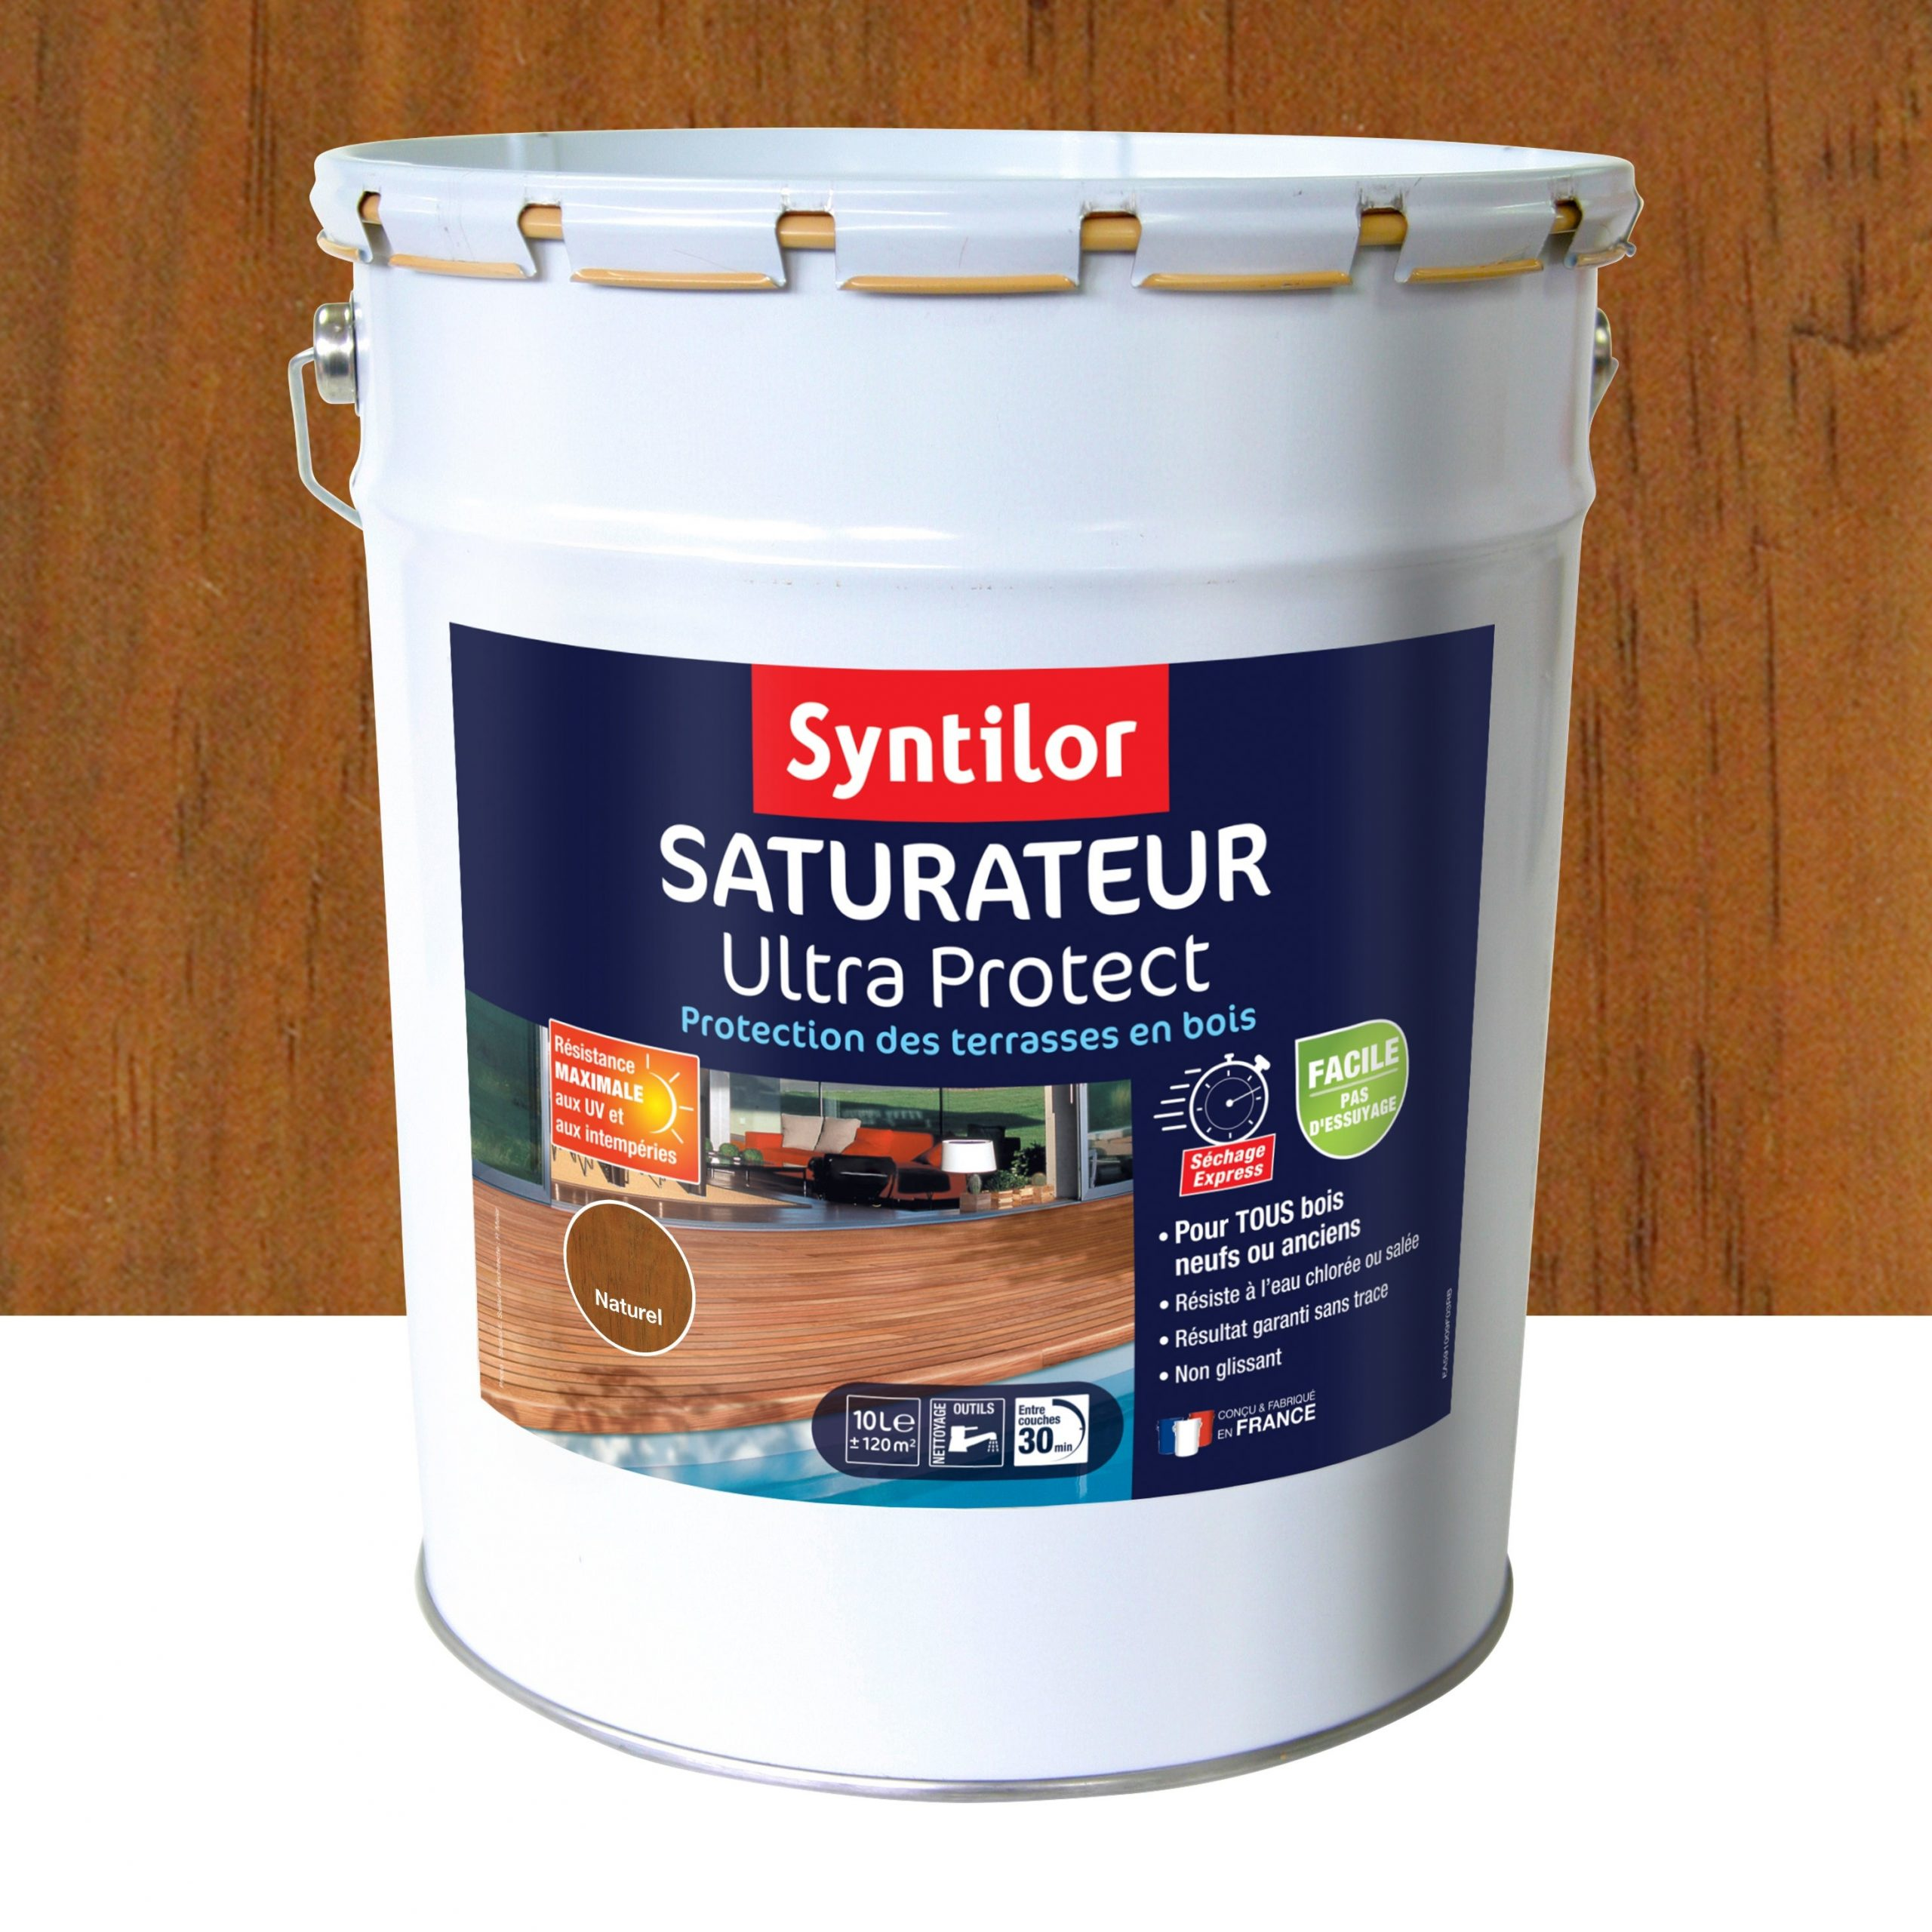 Saturateur Syntilor Ultra Protect 10 L, Naturel dedans Saturateur Luxens Protection Terrasse Bois 5L Naturel